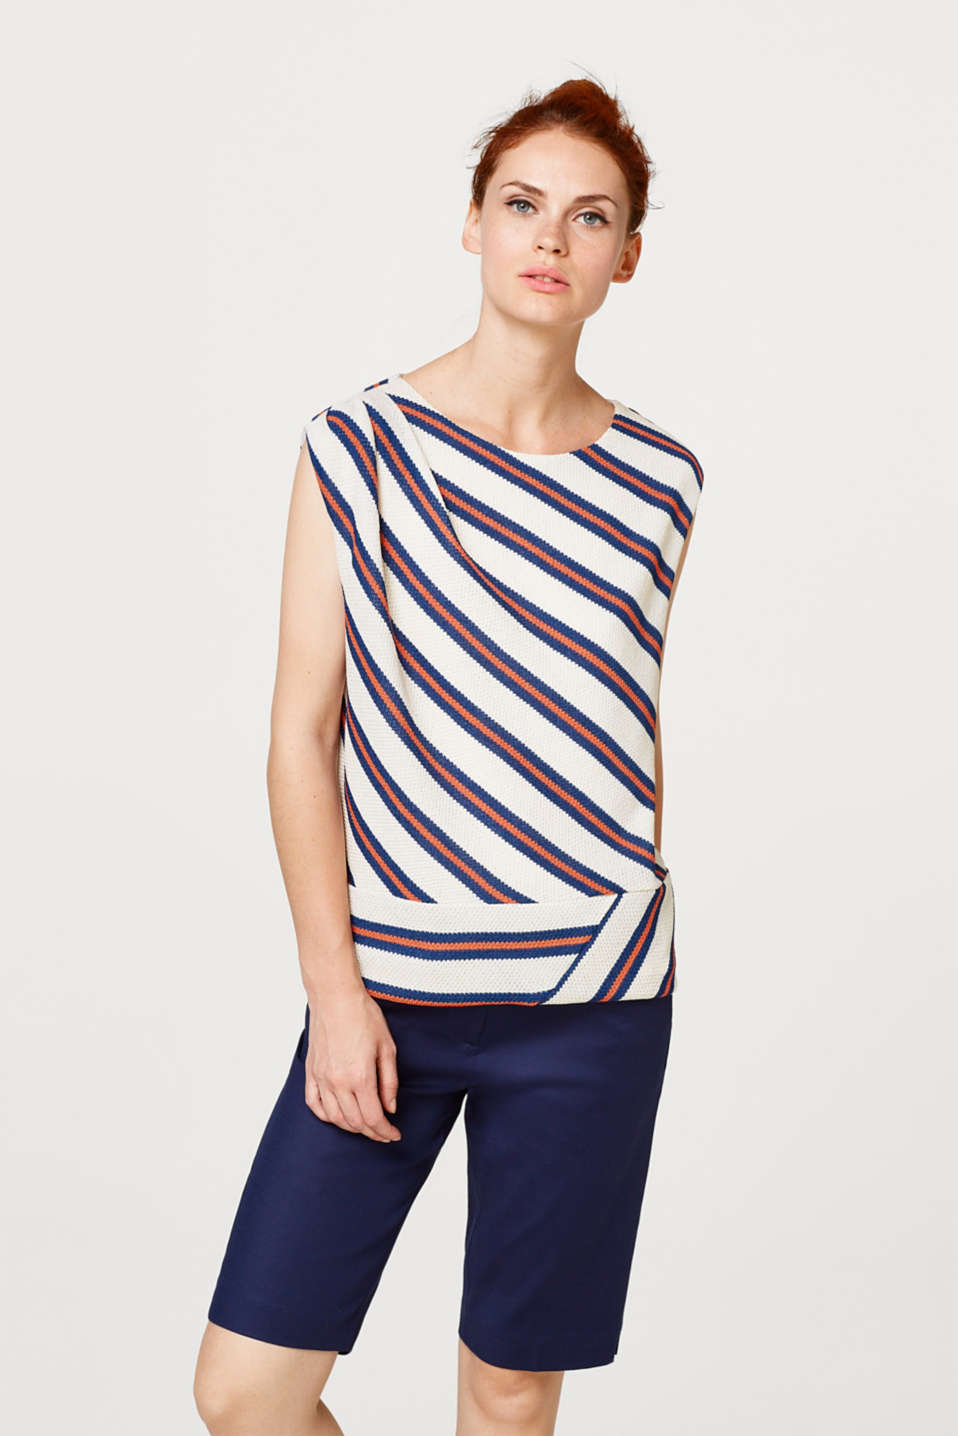 Textured jersey top with diagonal stripes